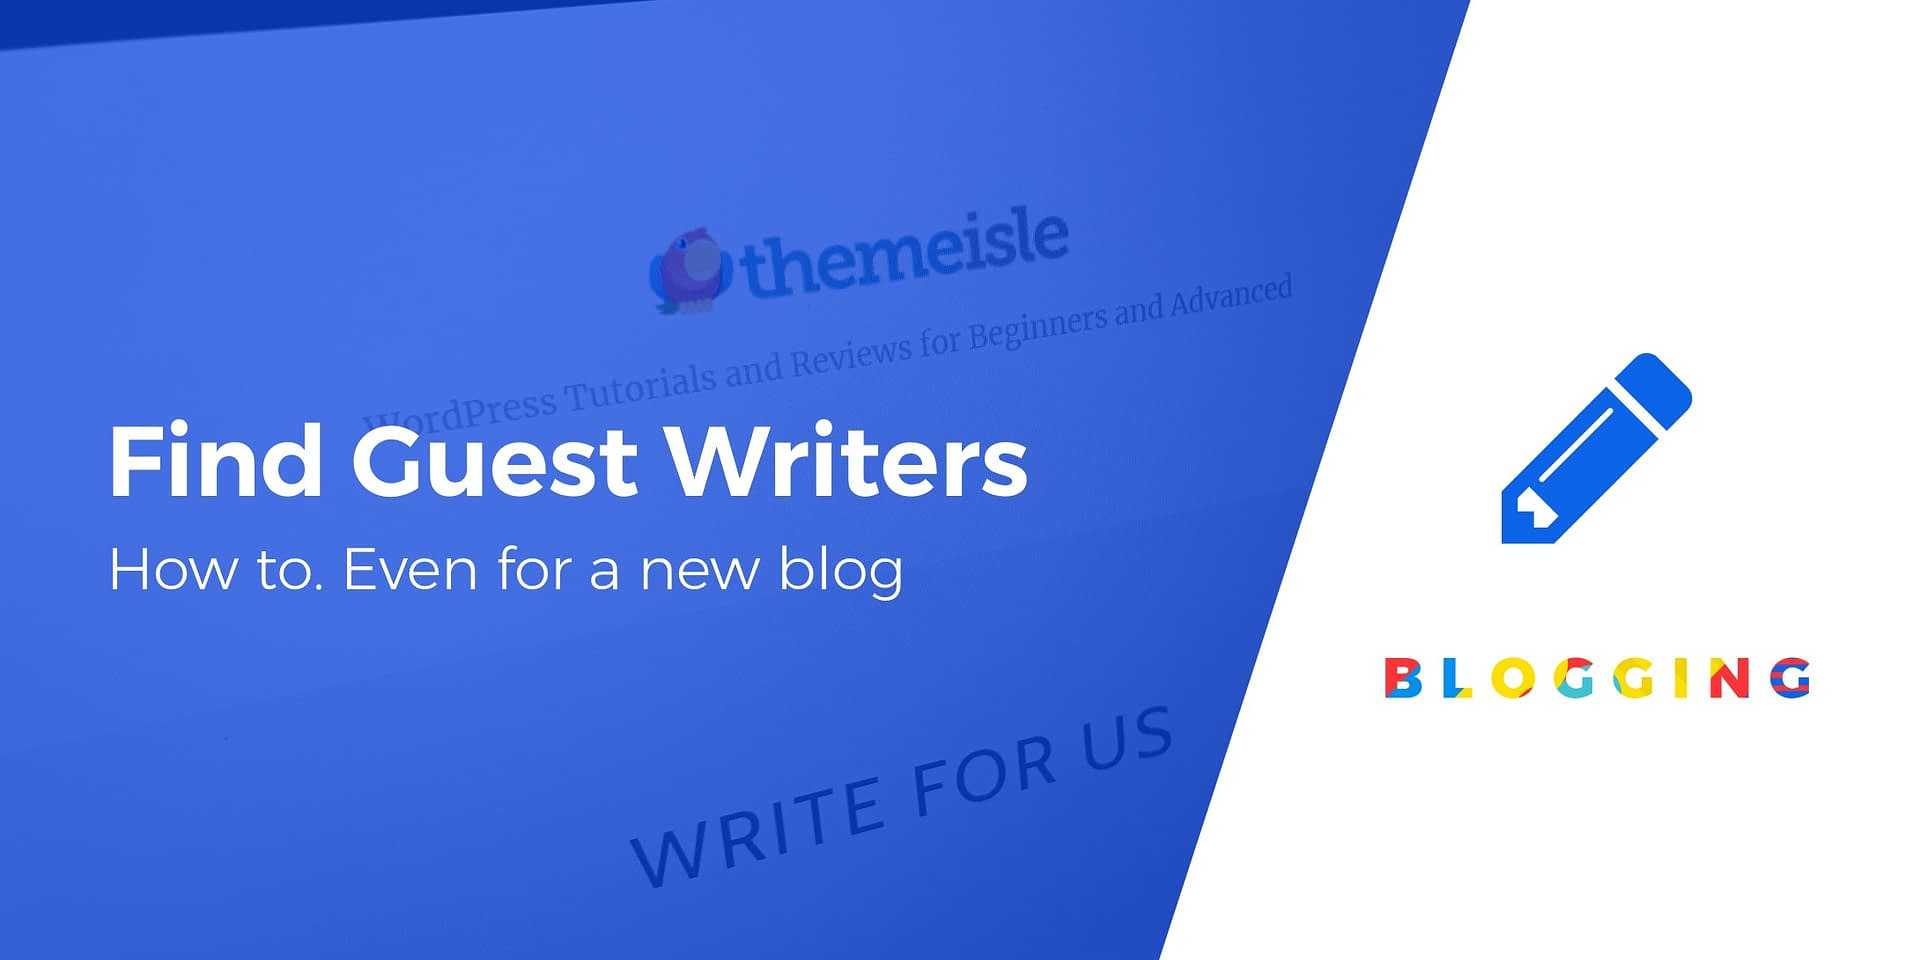 How to Find Guest Writers for Your Blog Even if It's Brand New